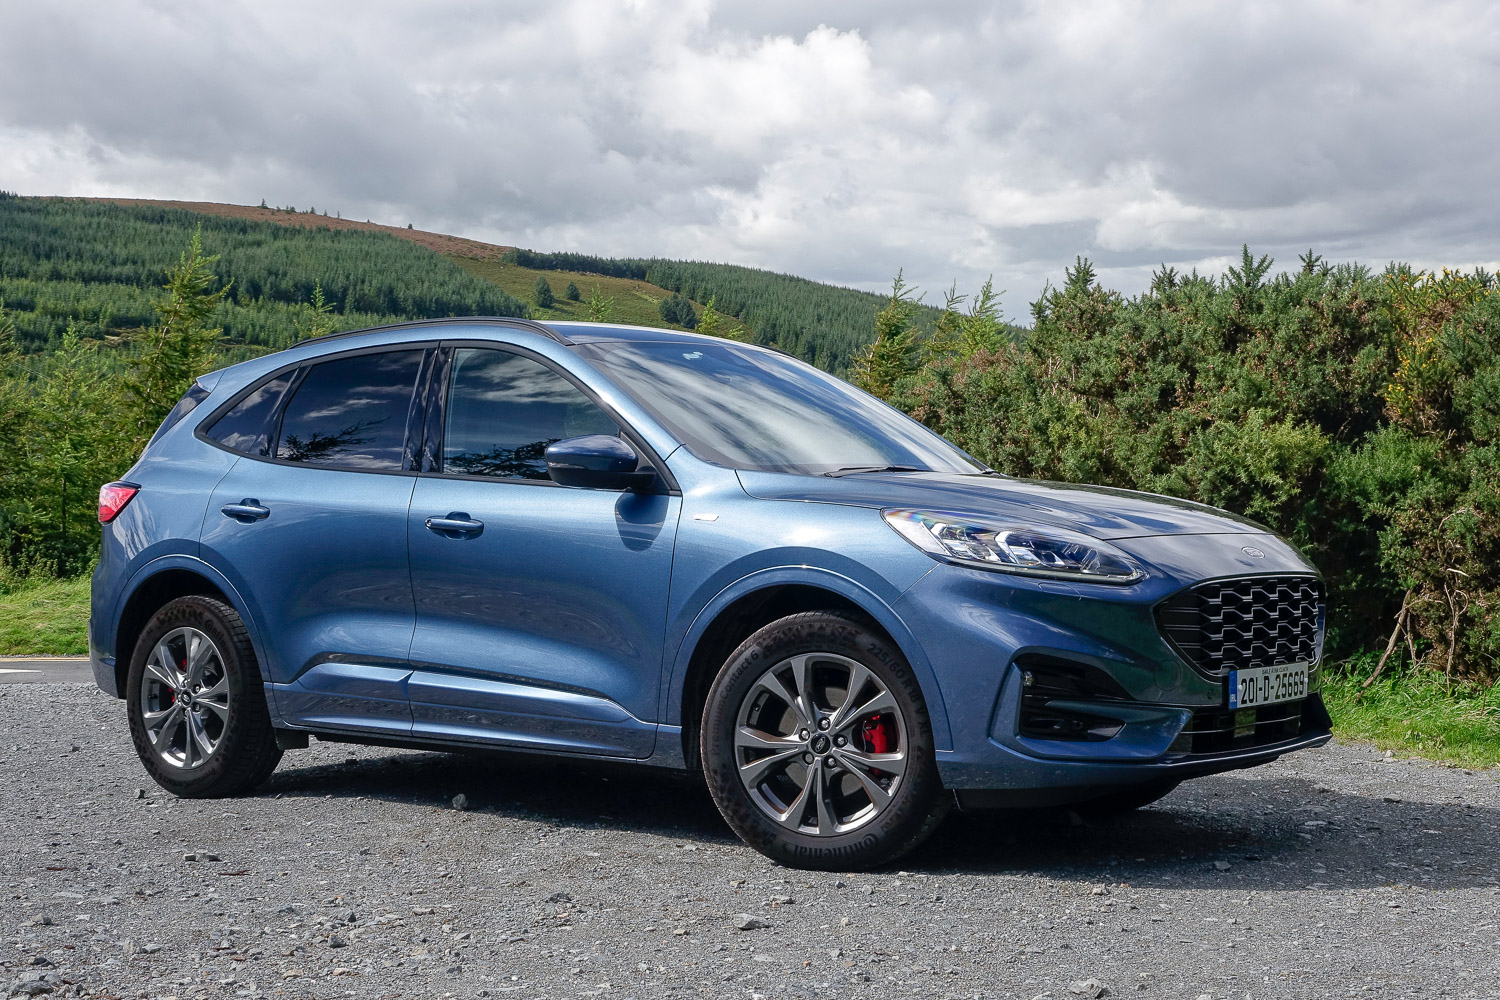 Ford Kuga 1.5 EcoBlue diesel (2020) | Reviews | Complete Car